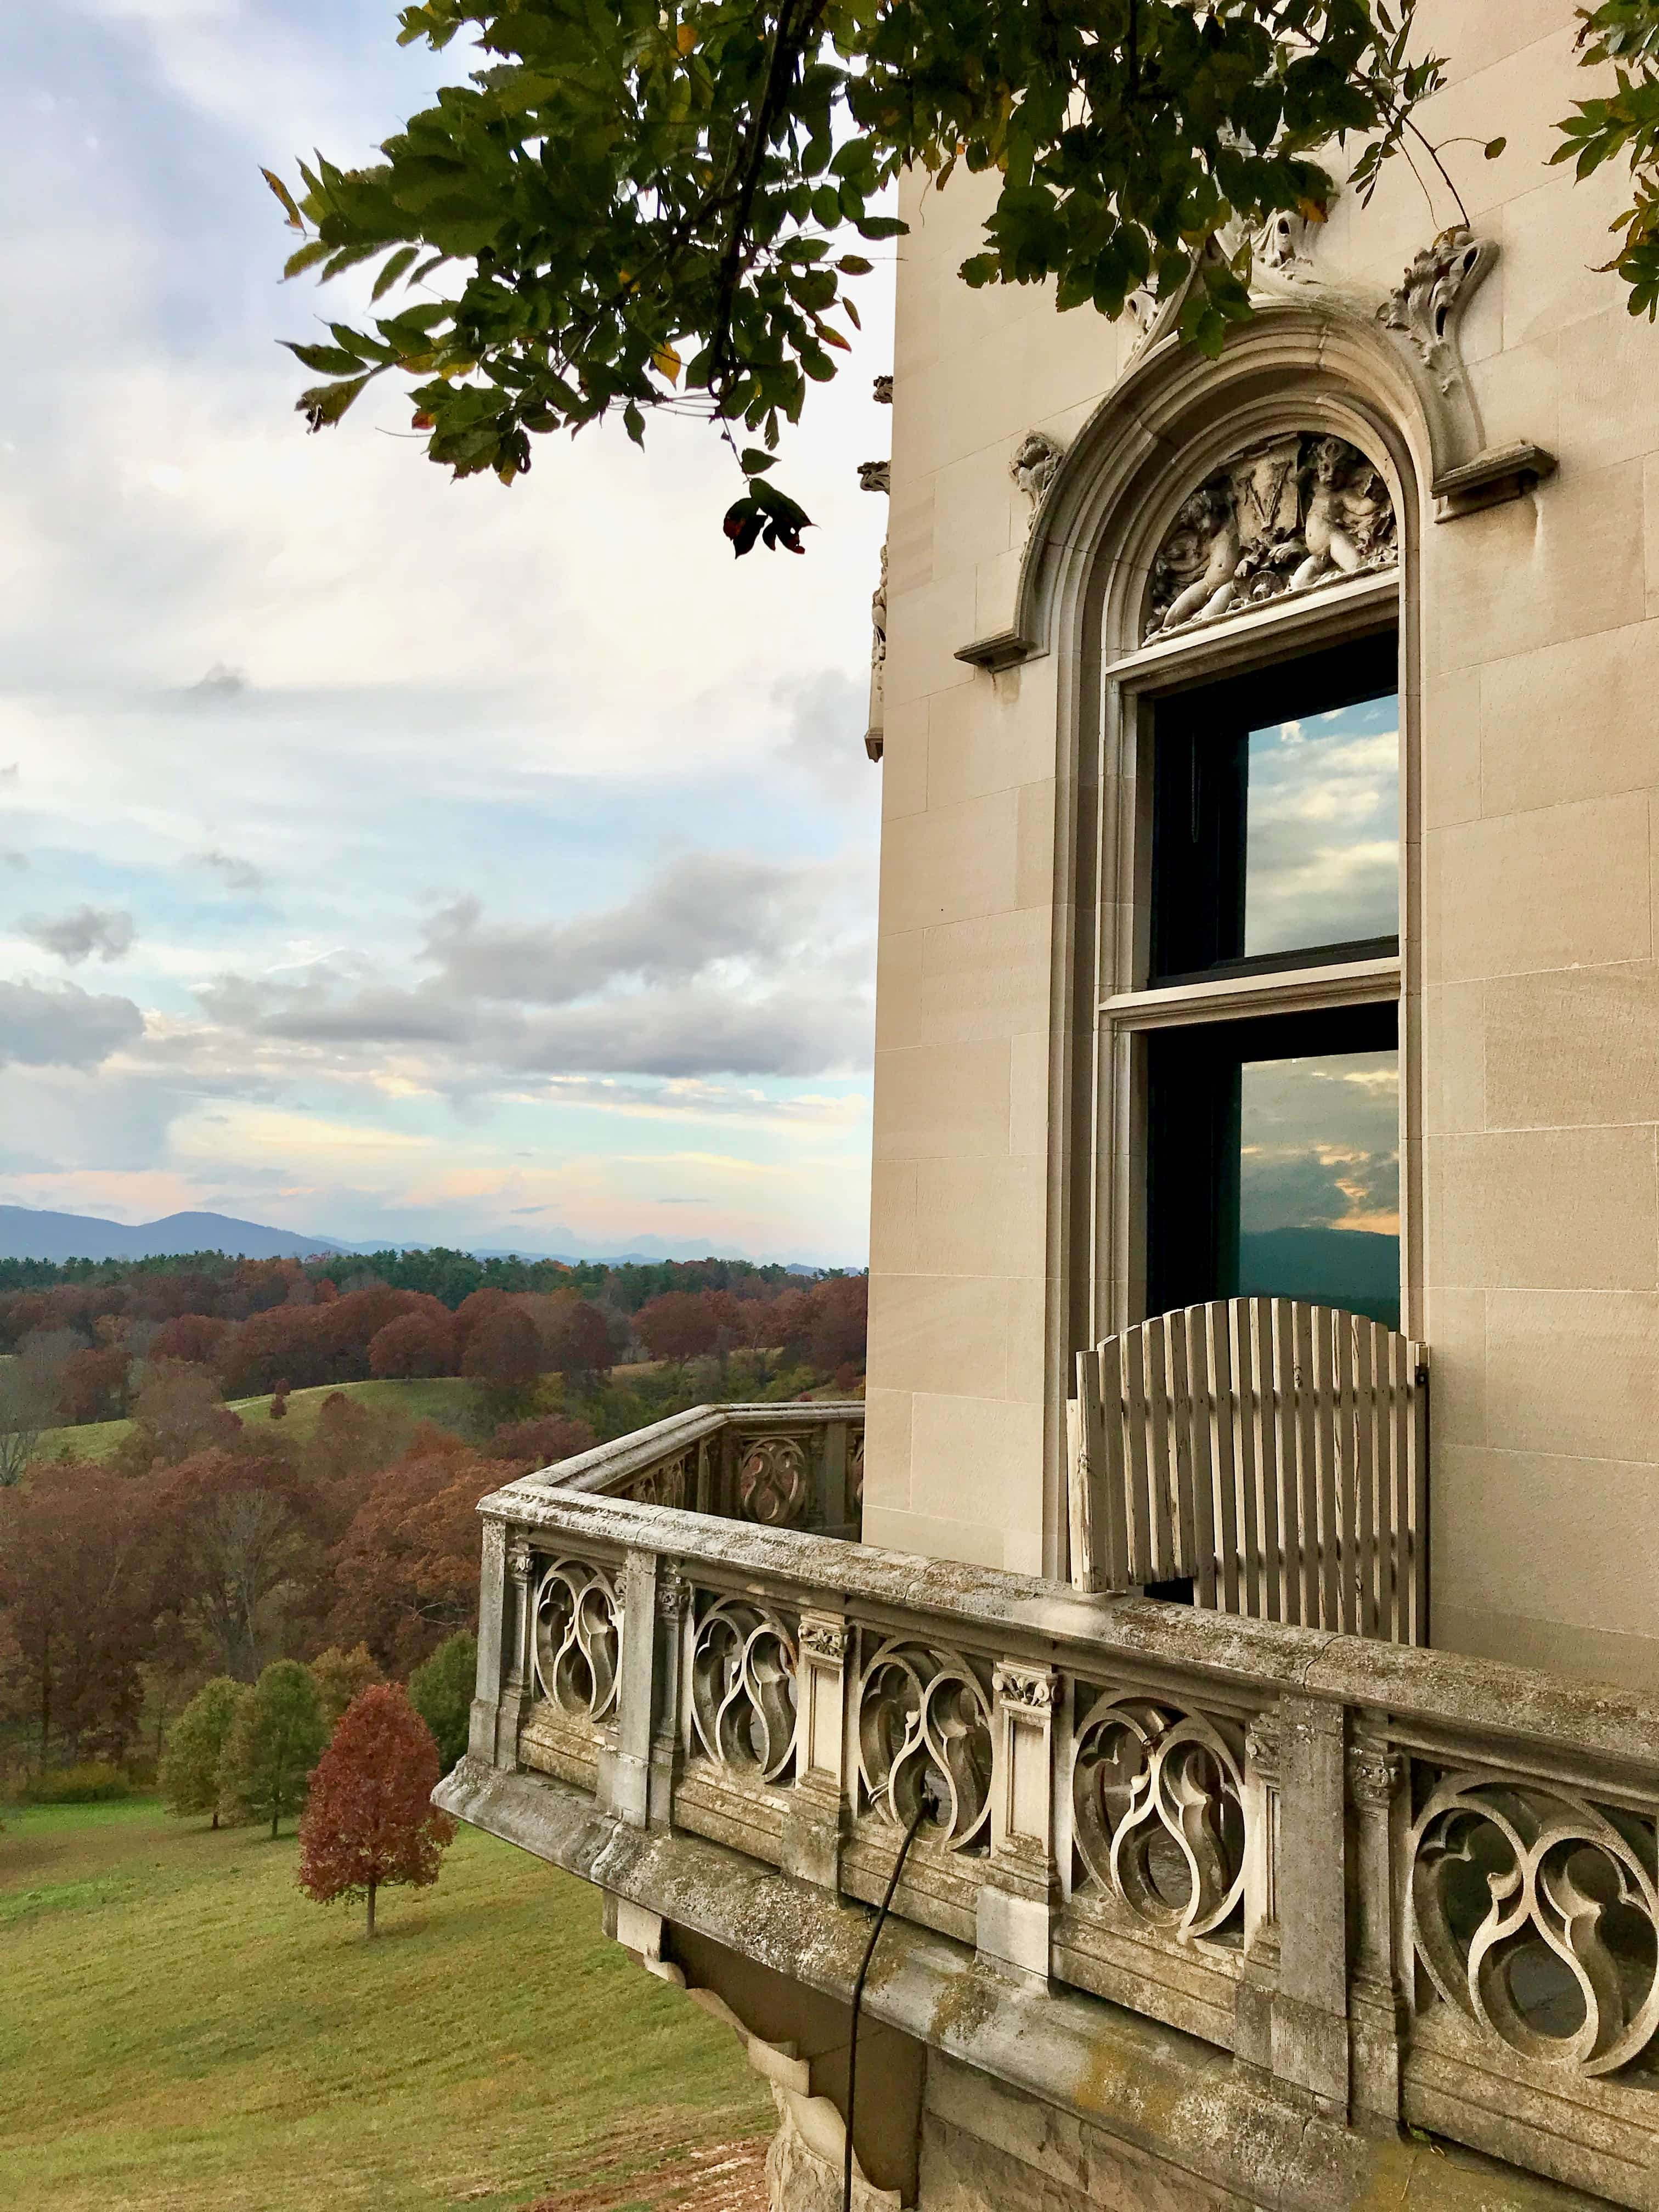 reflection of mountains in window at biltmore house